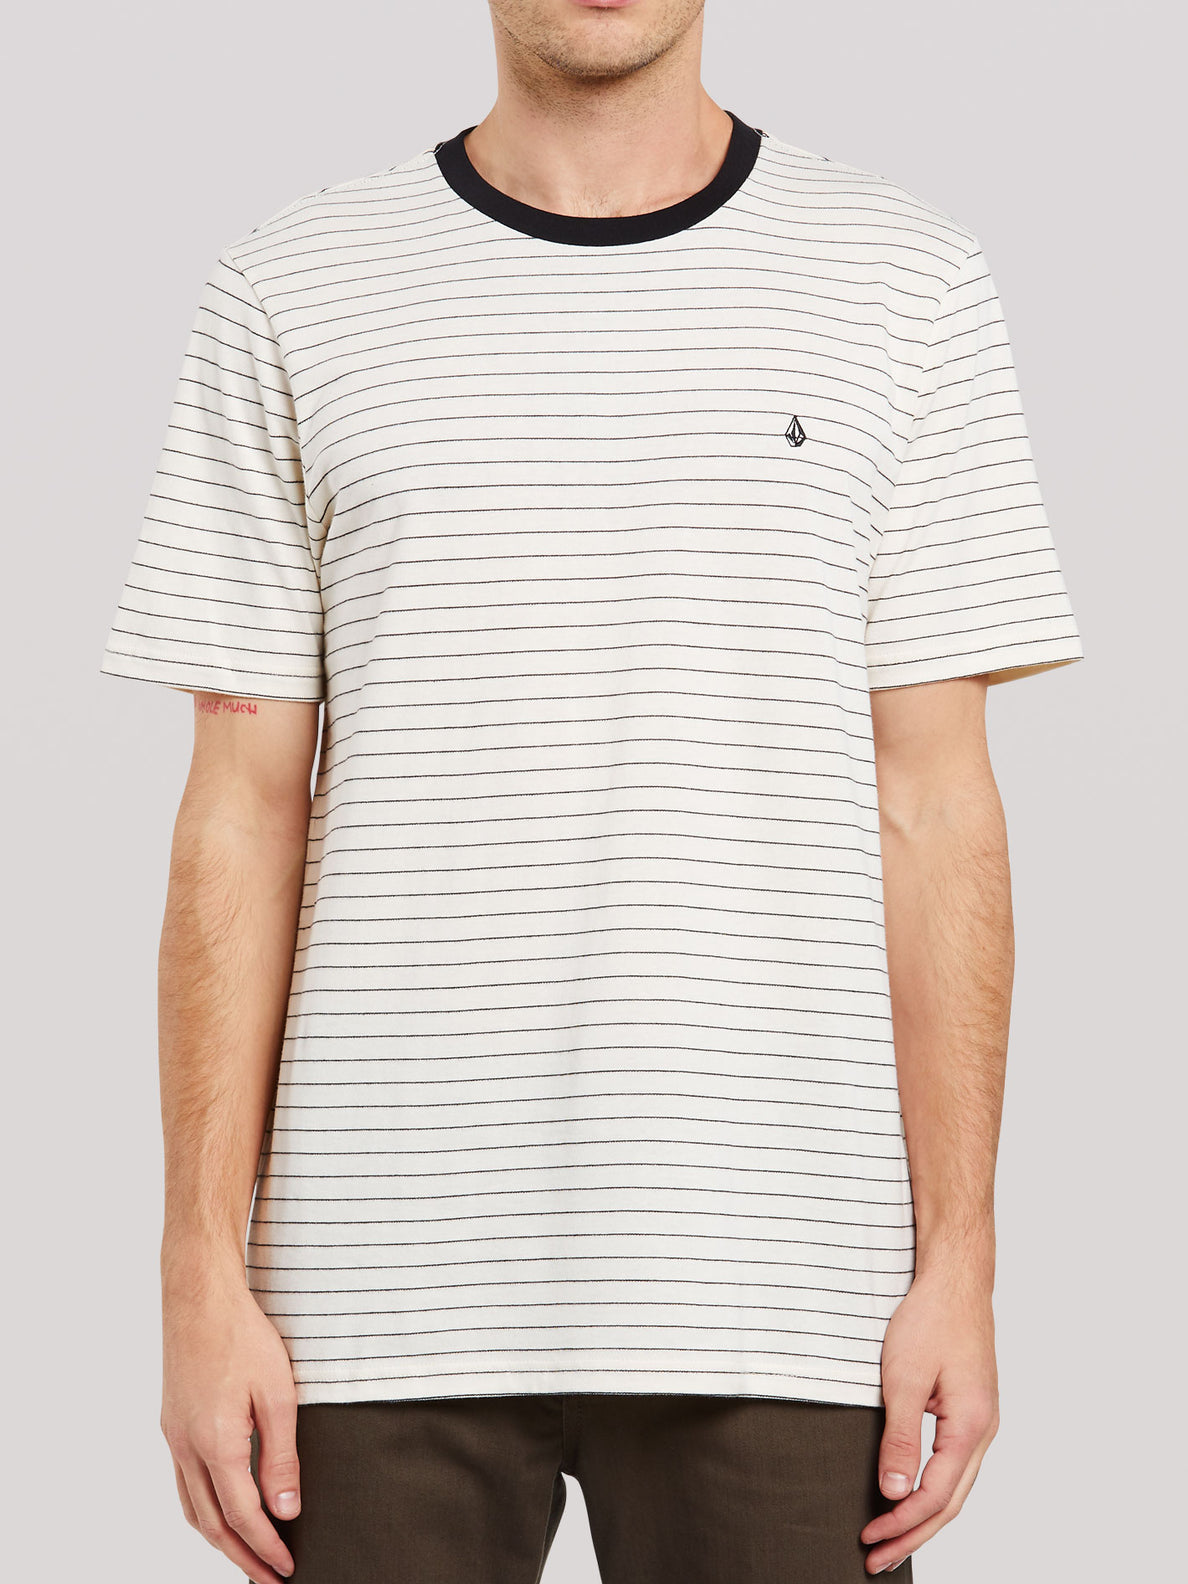 Stories Crew Short Sleeve - Primer White (A0132005_PWT) [F]